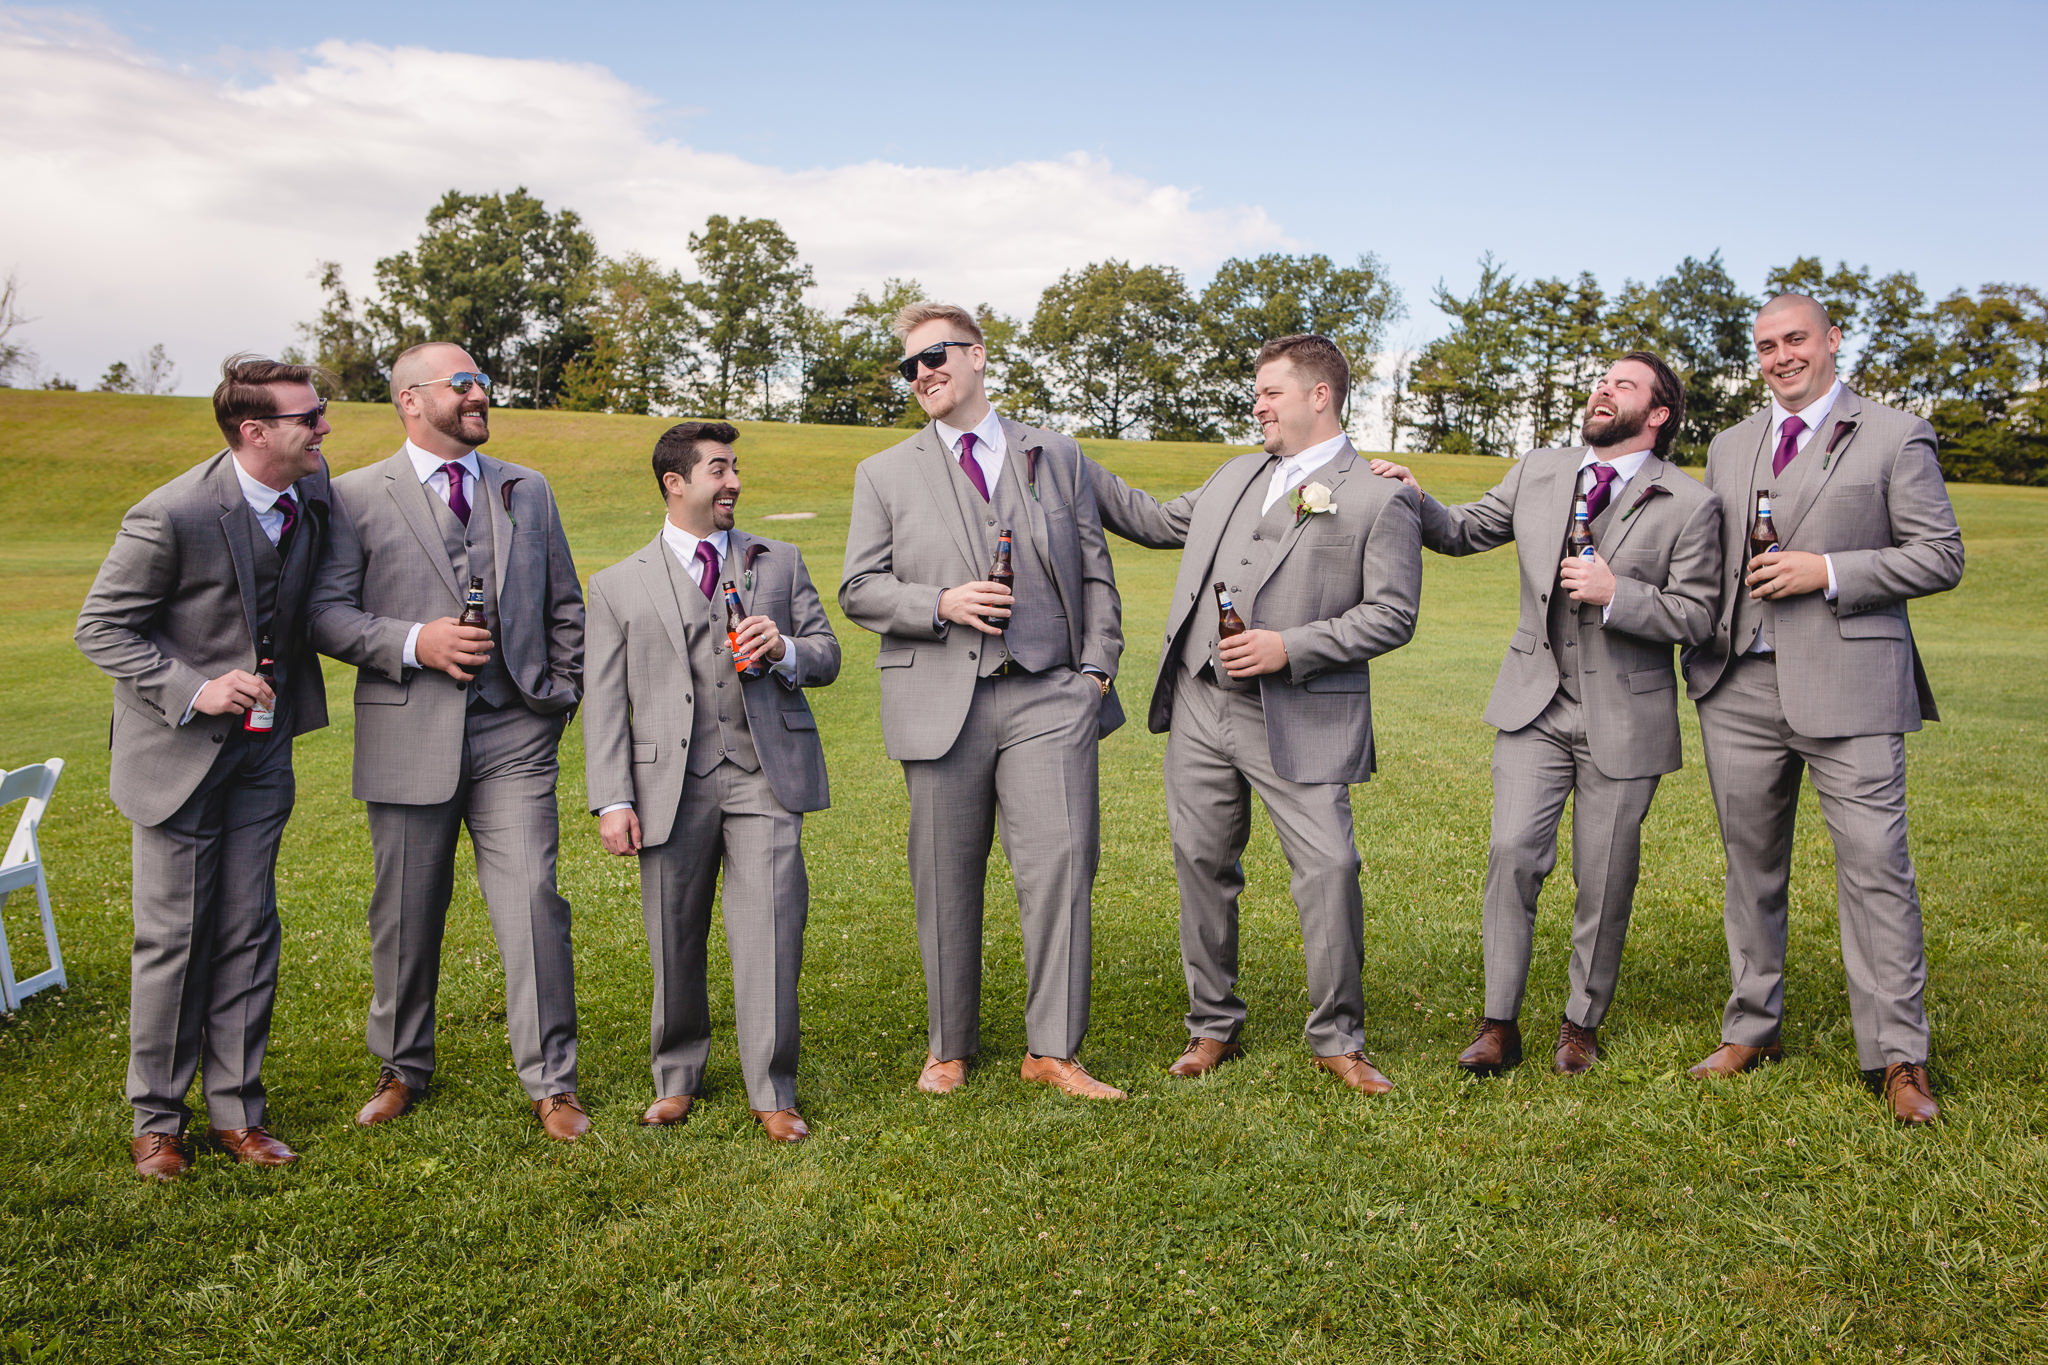 Groom and groomsmen laugh and drink beer before a White Barn wedding ceremony